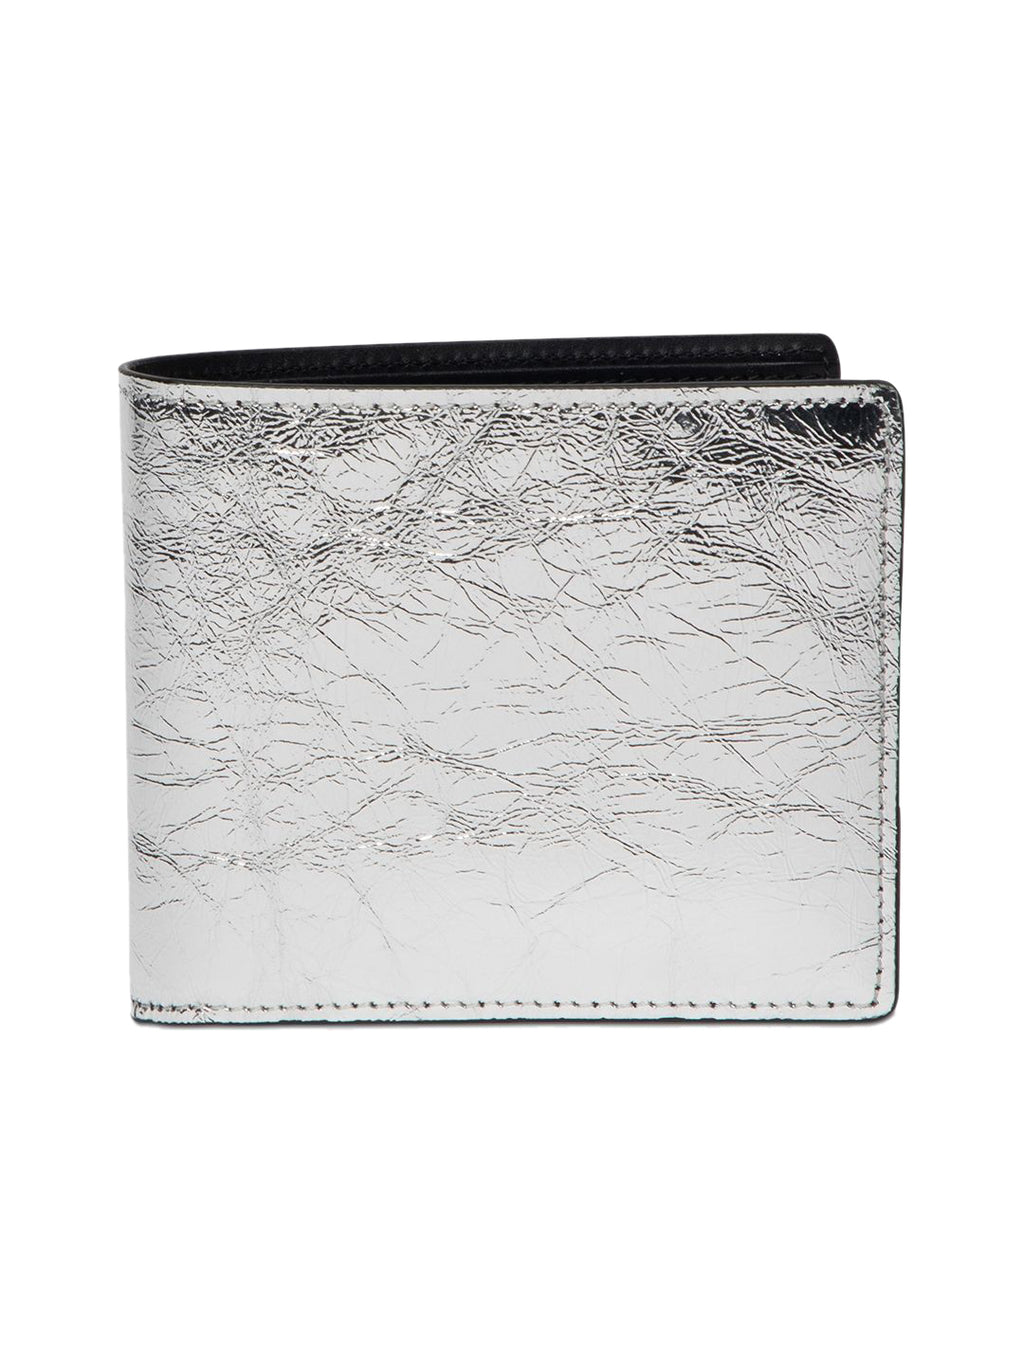 Silver & Black Distressed Classic Leather Wallet